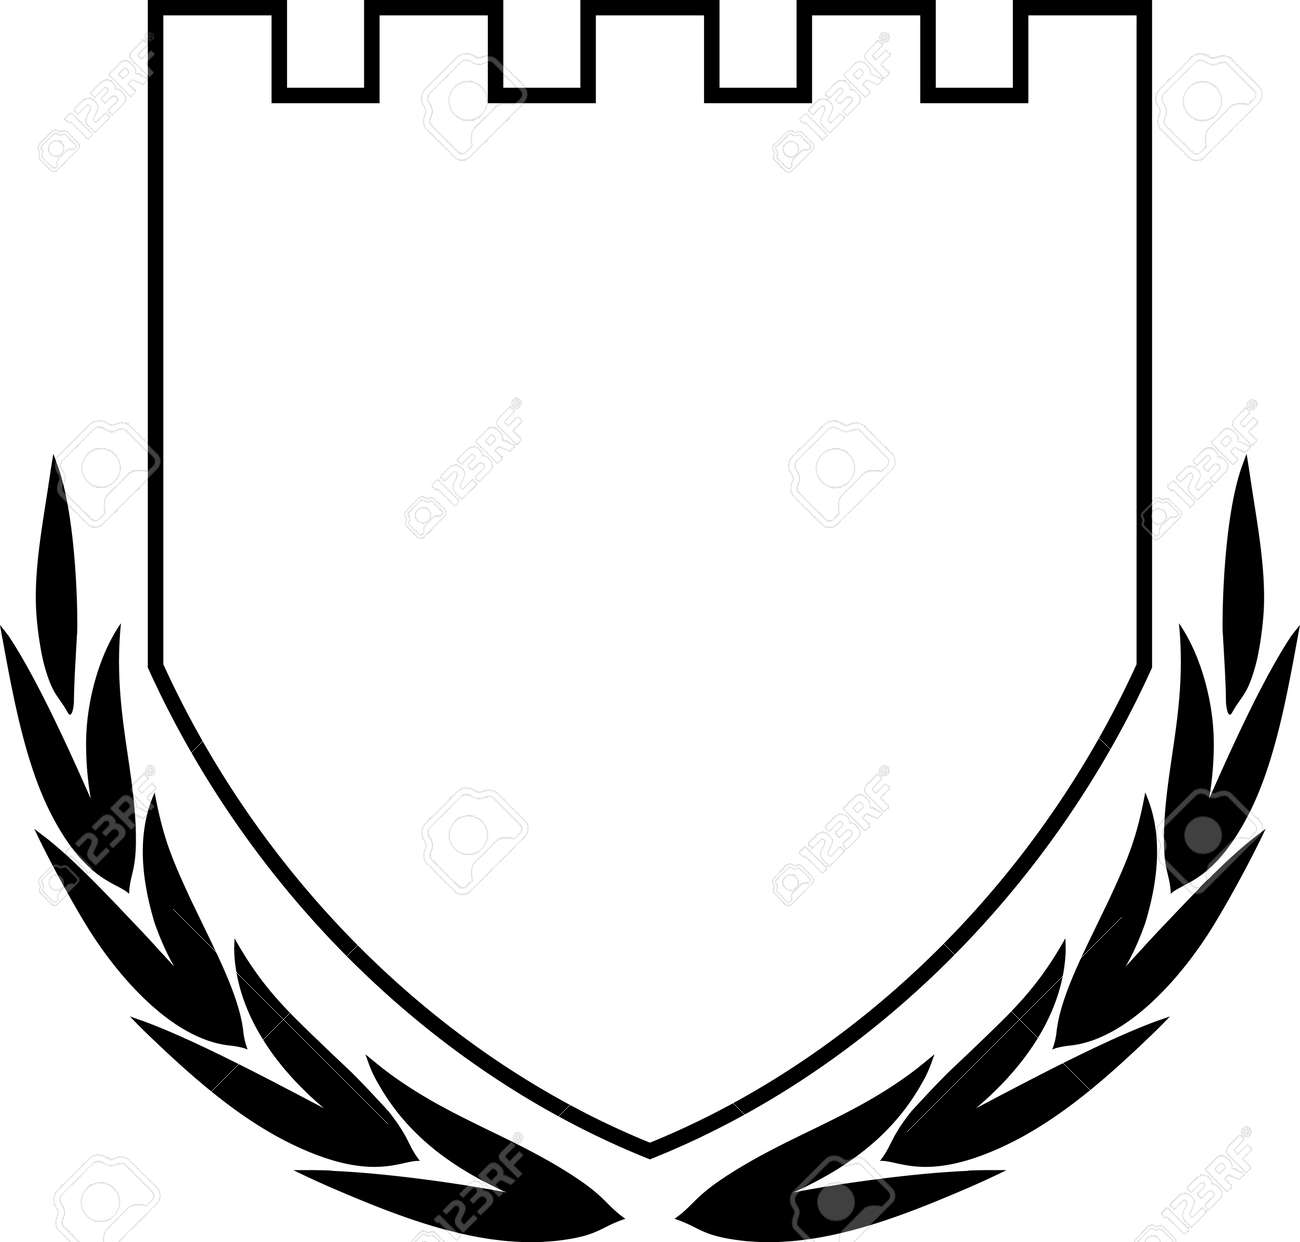 vector coat of arms shield and laurel wreath isolated royalty free rh 123rf com coat of arms vector free download coat of arms vector art